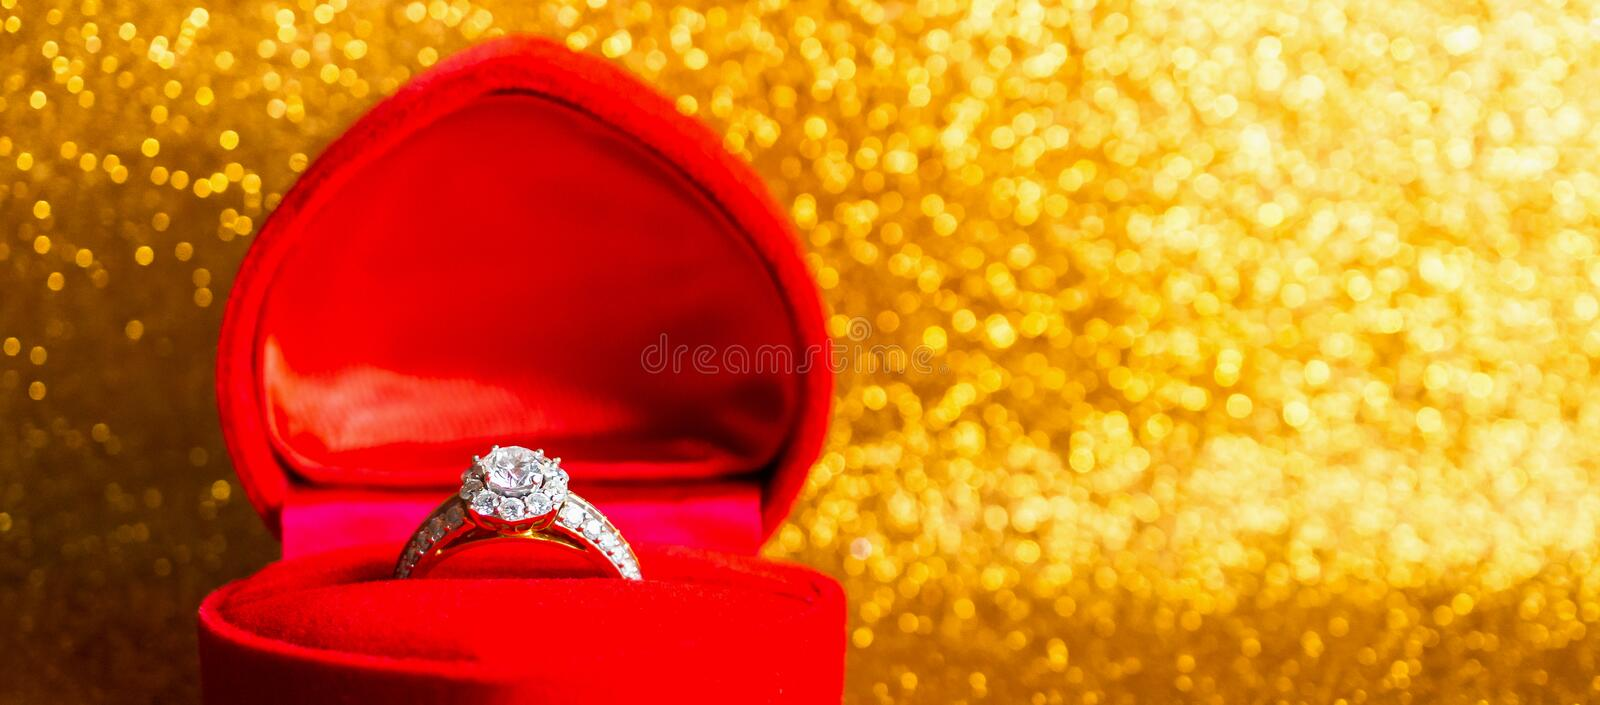 Jewelry diamond ring in gift box with abstract festive glitter Christmas holiday texture background. Blur with bokeh light royalty free stock image